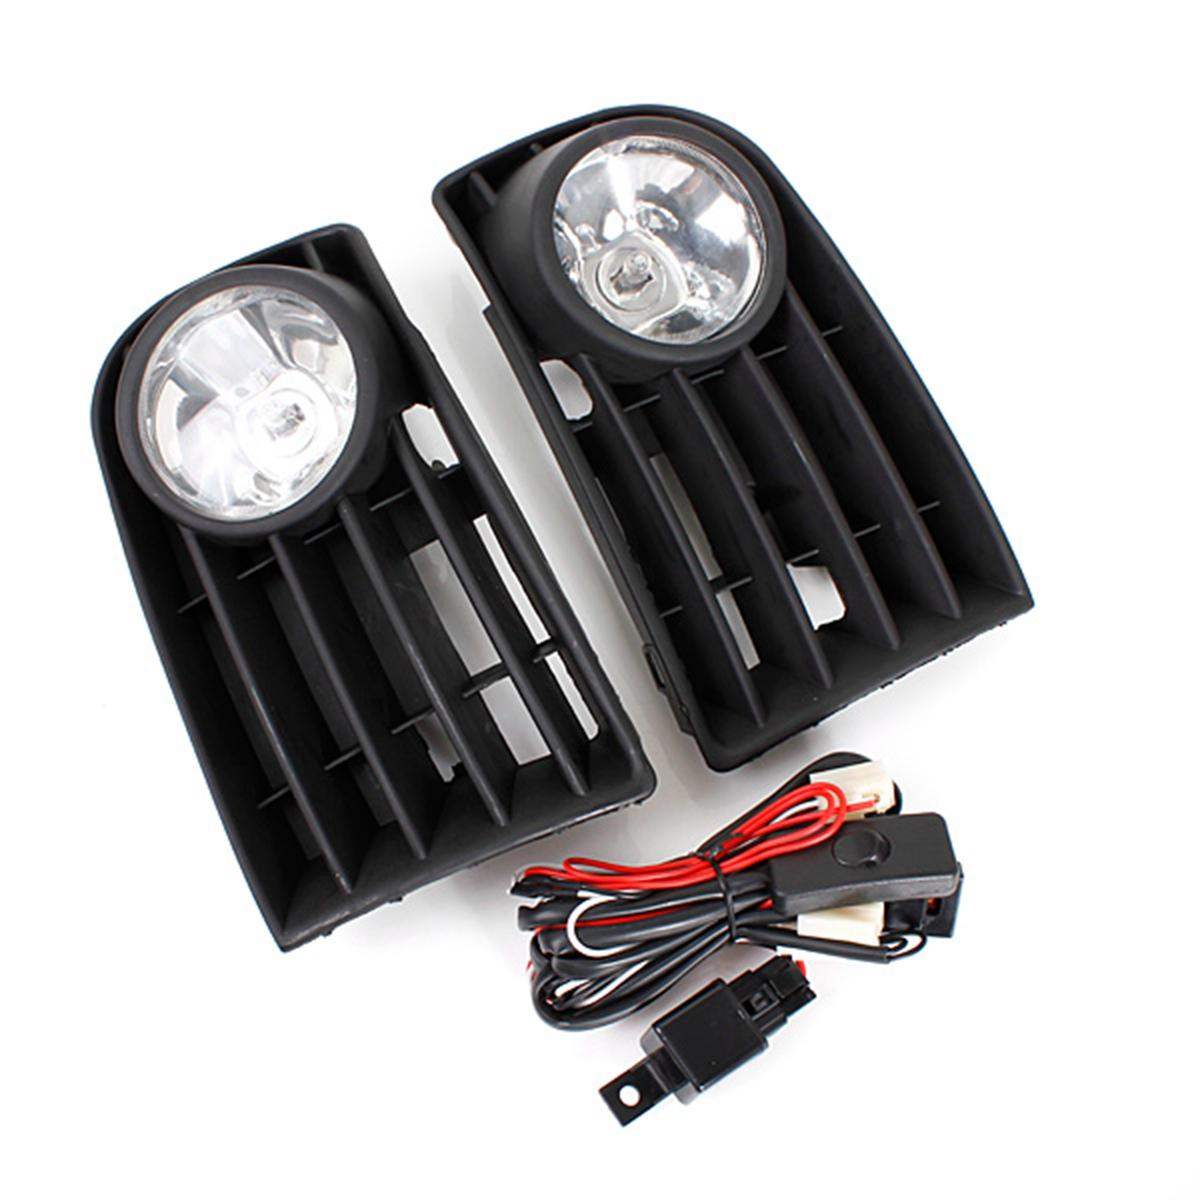 hight resolution of car front bumper fog lights grill kit with 55w h3 bulb white for vw golf mk5 rabbit 06 09 cod